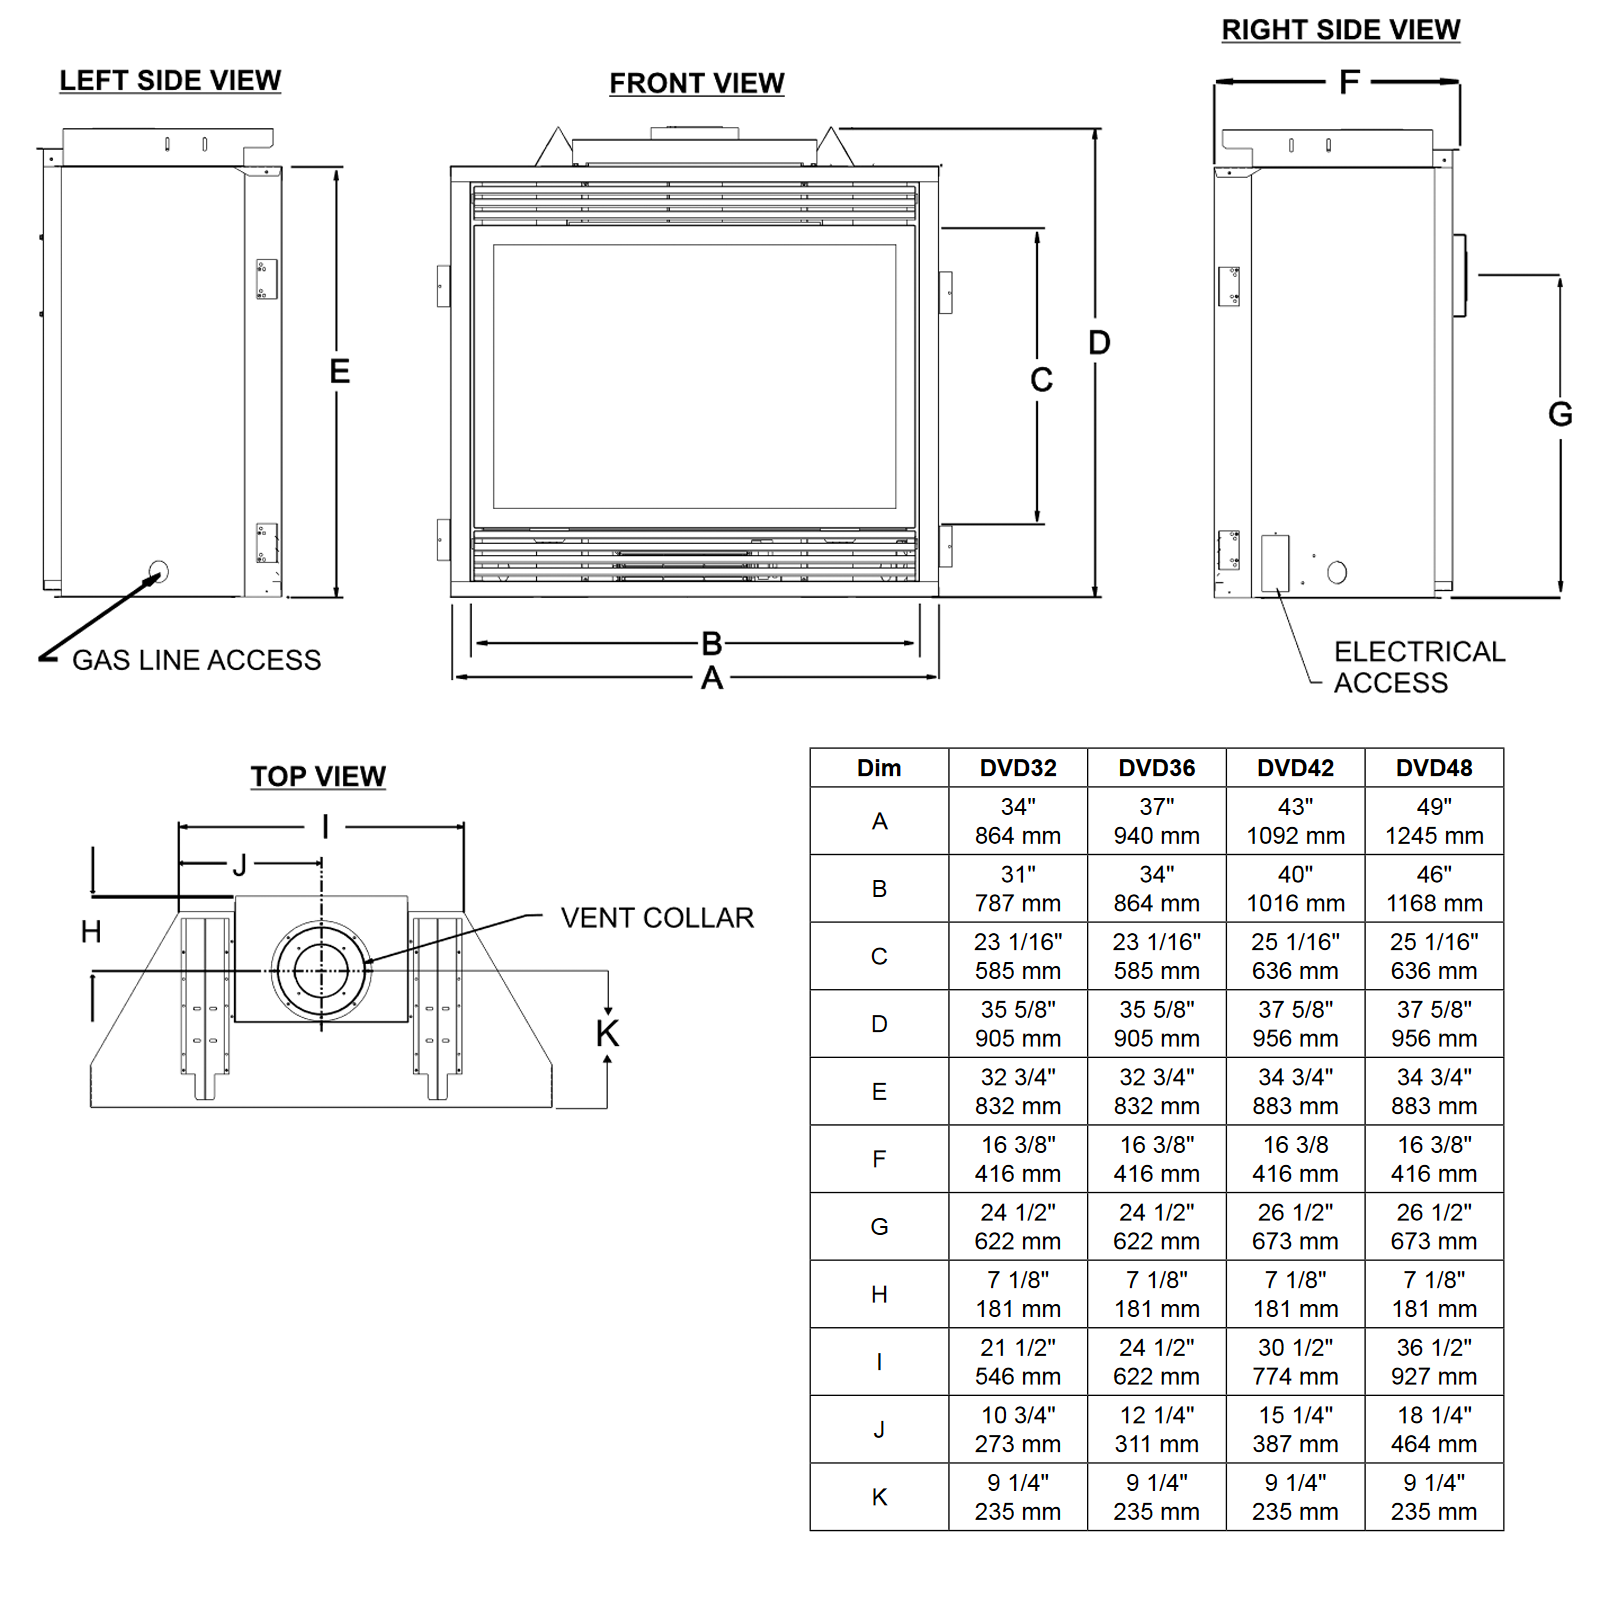 DVD42 Technical Drawing 1